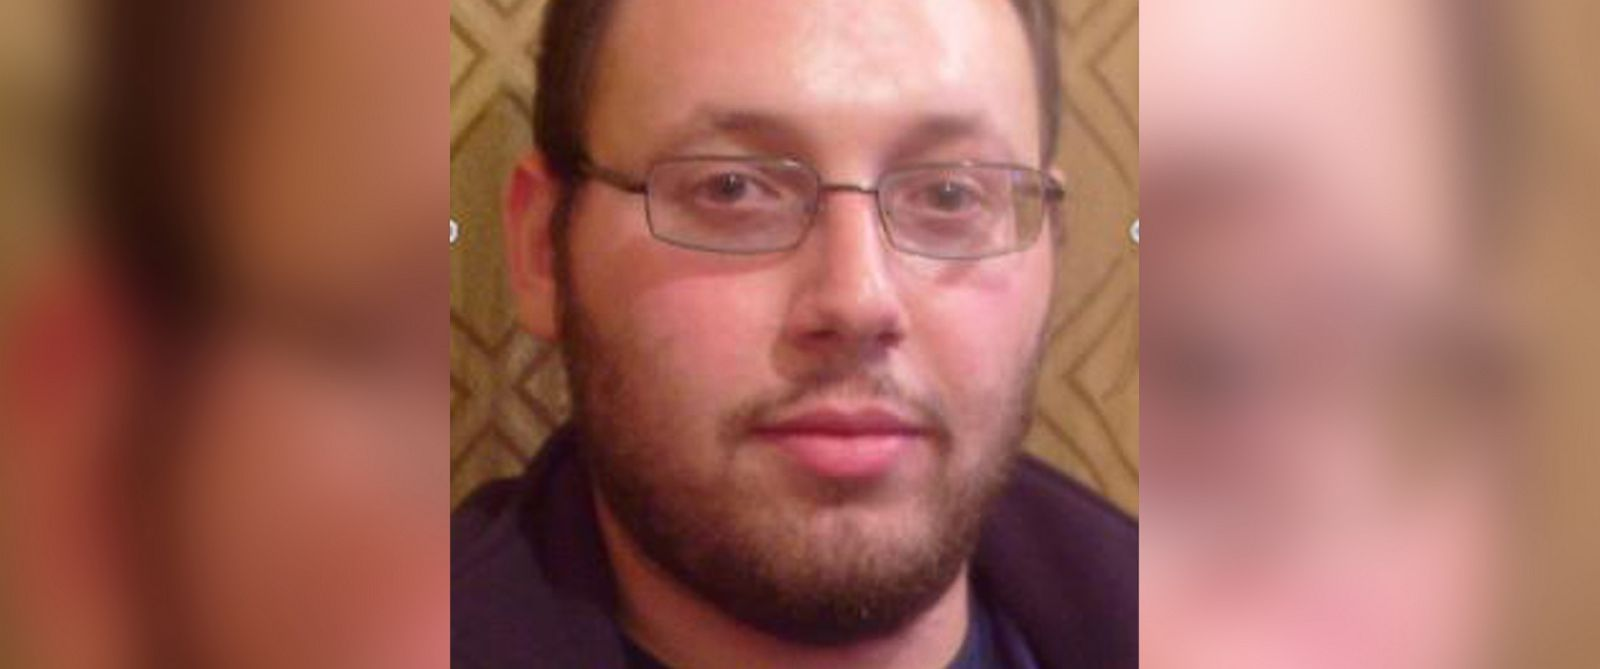 PHOTO: Steven Sotloff is shown in his profile picture for The Daily Caller.